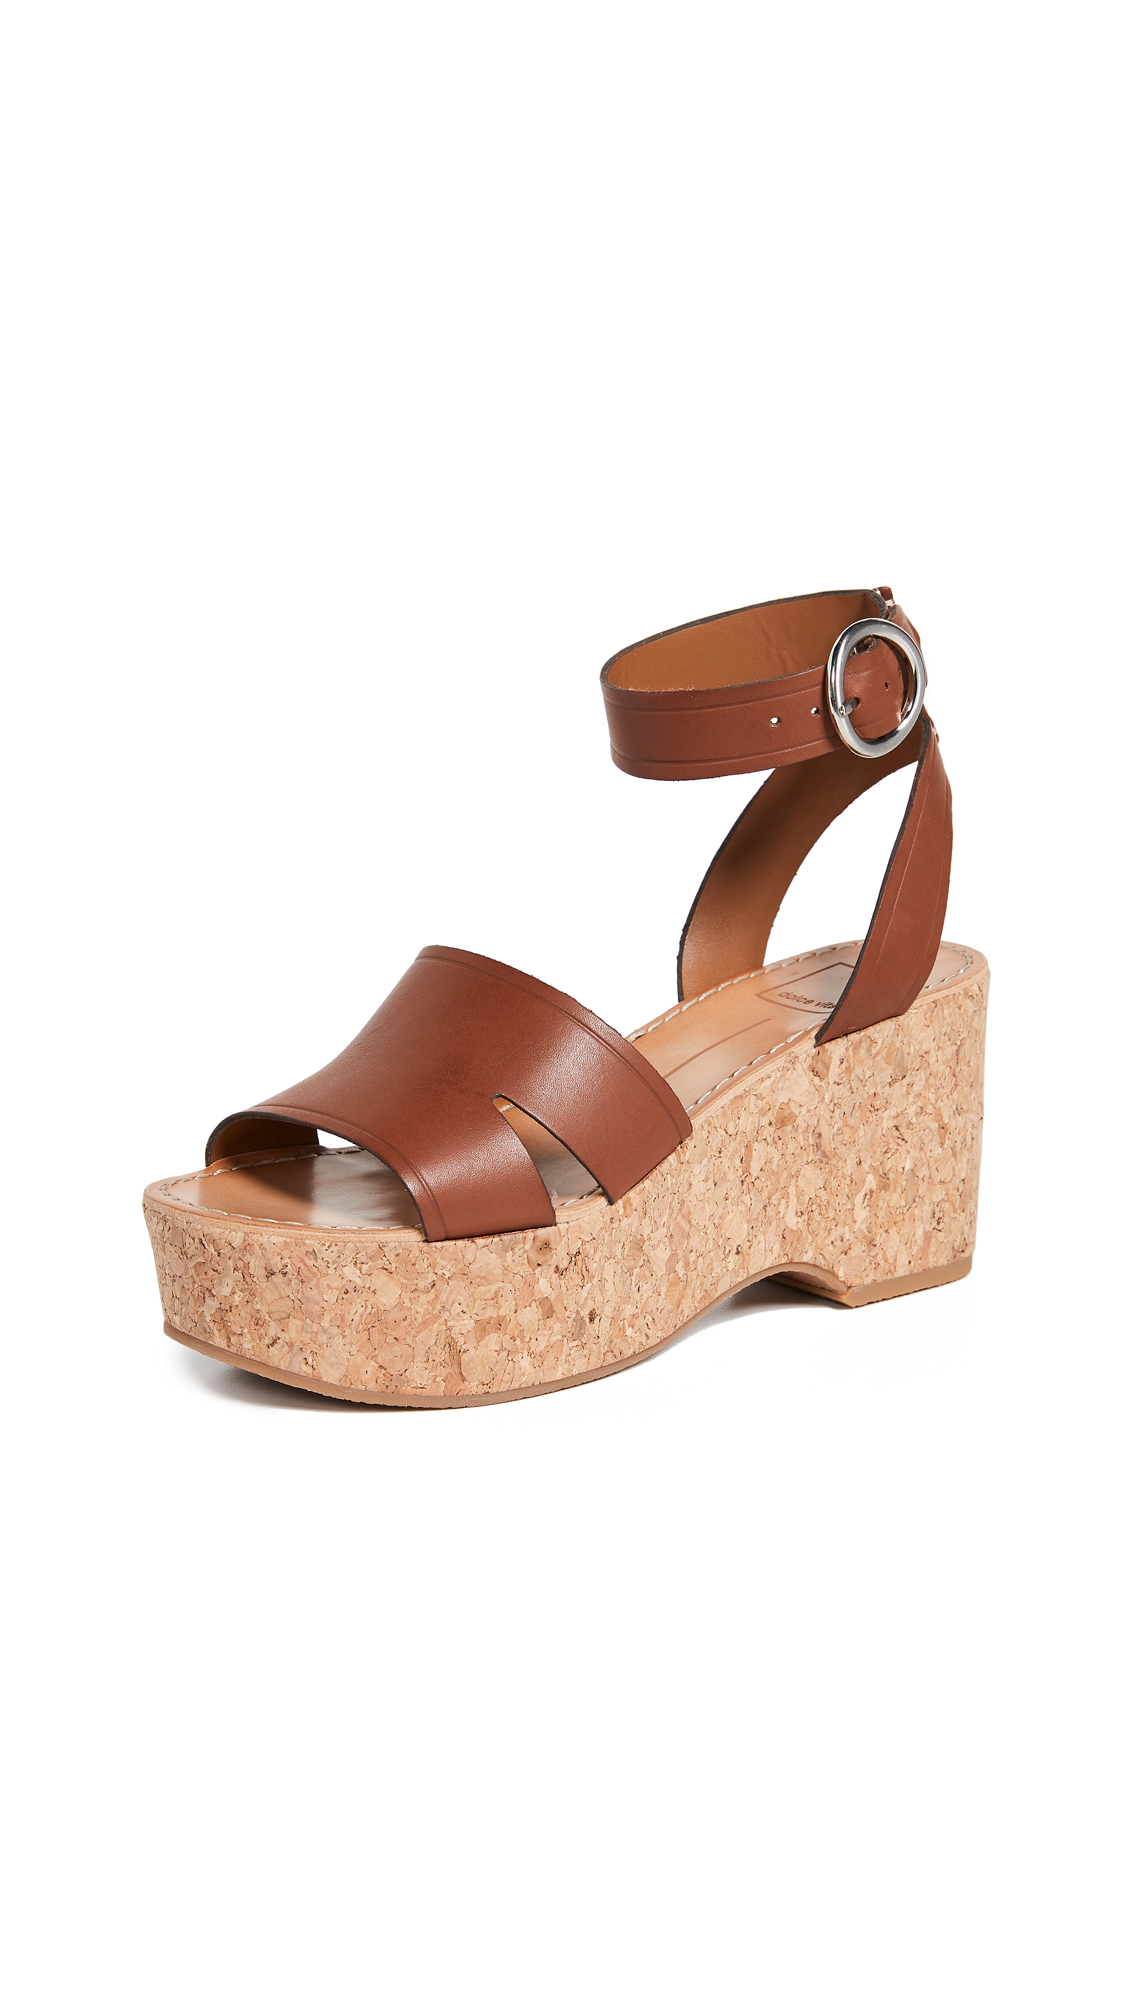 Dolce Vita Linda Ankle Strap Sandals - Brown